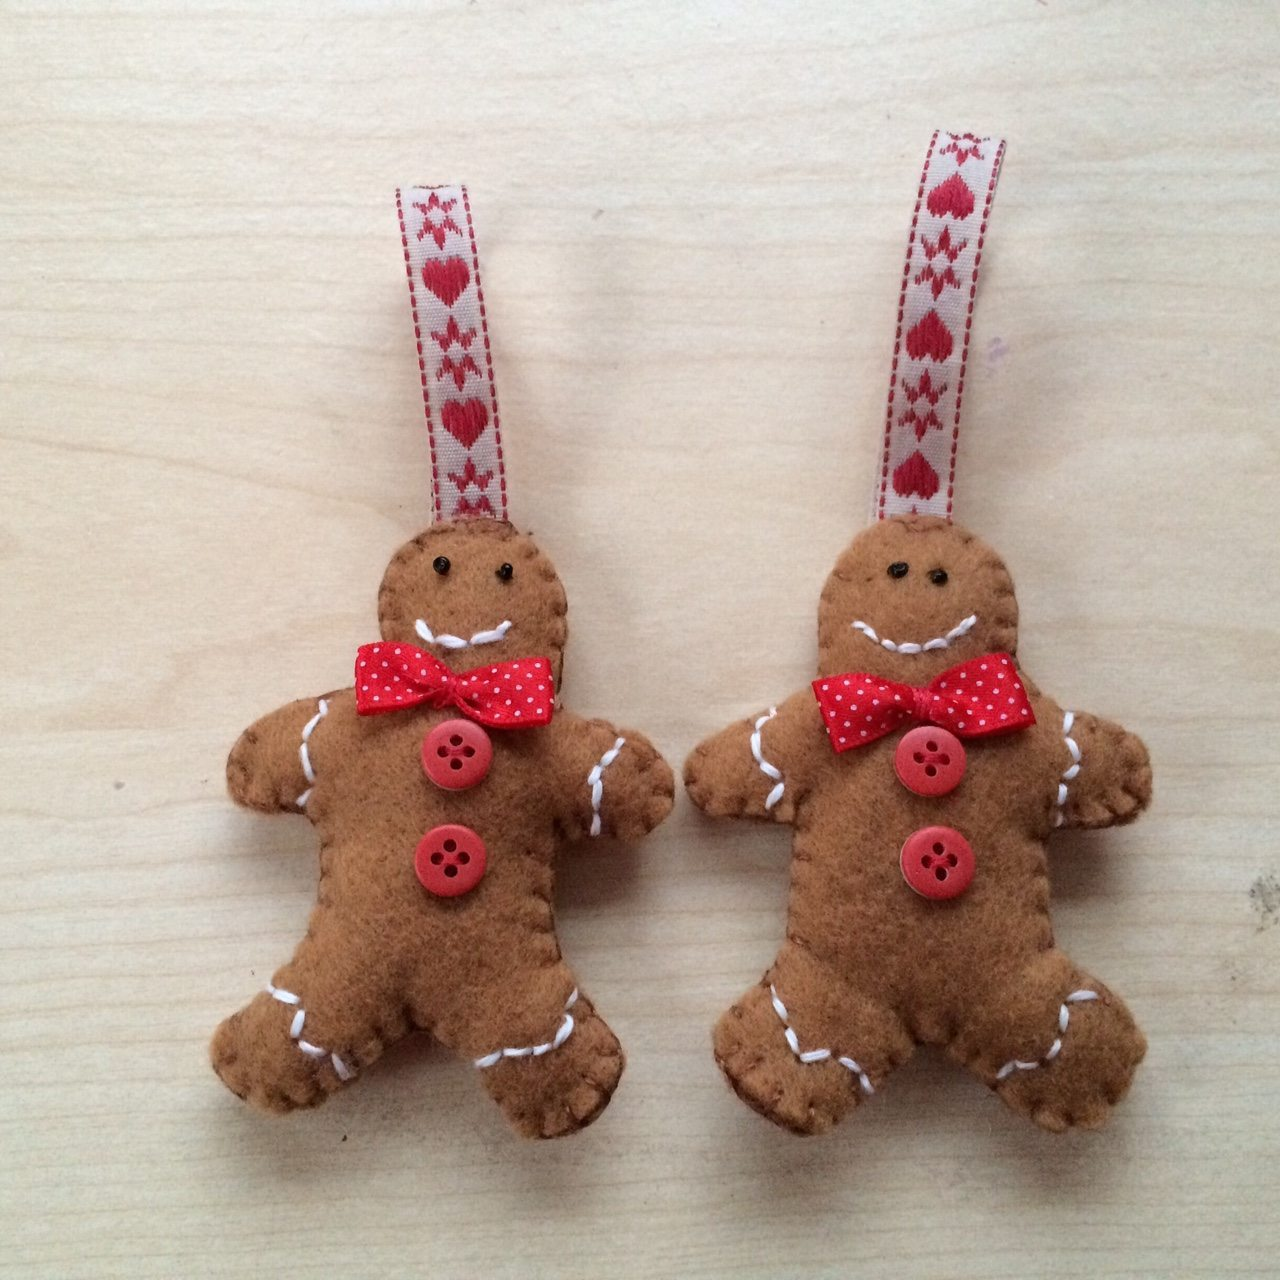 Gingerbread Men Tree Decorations made with Felt Fabric